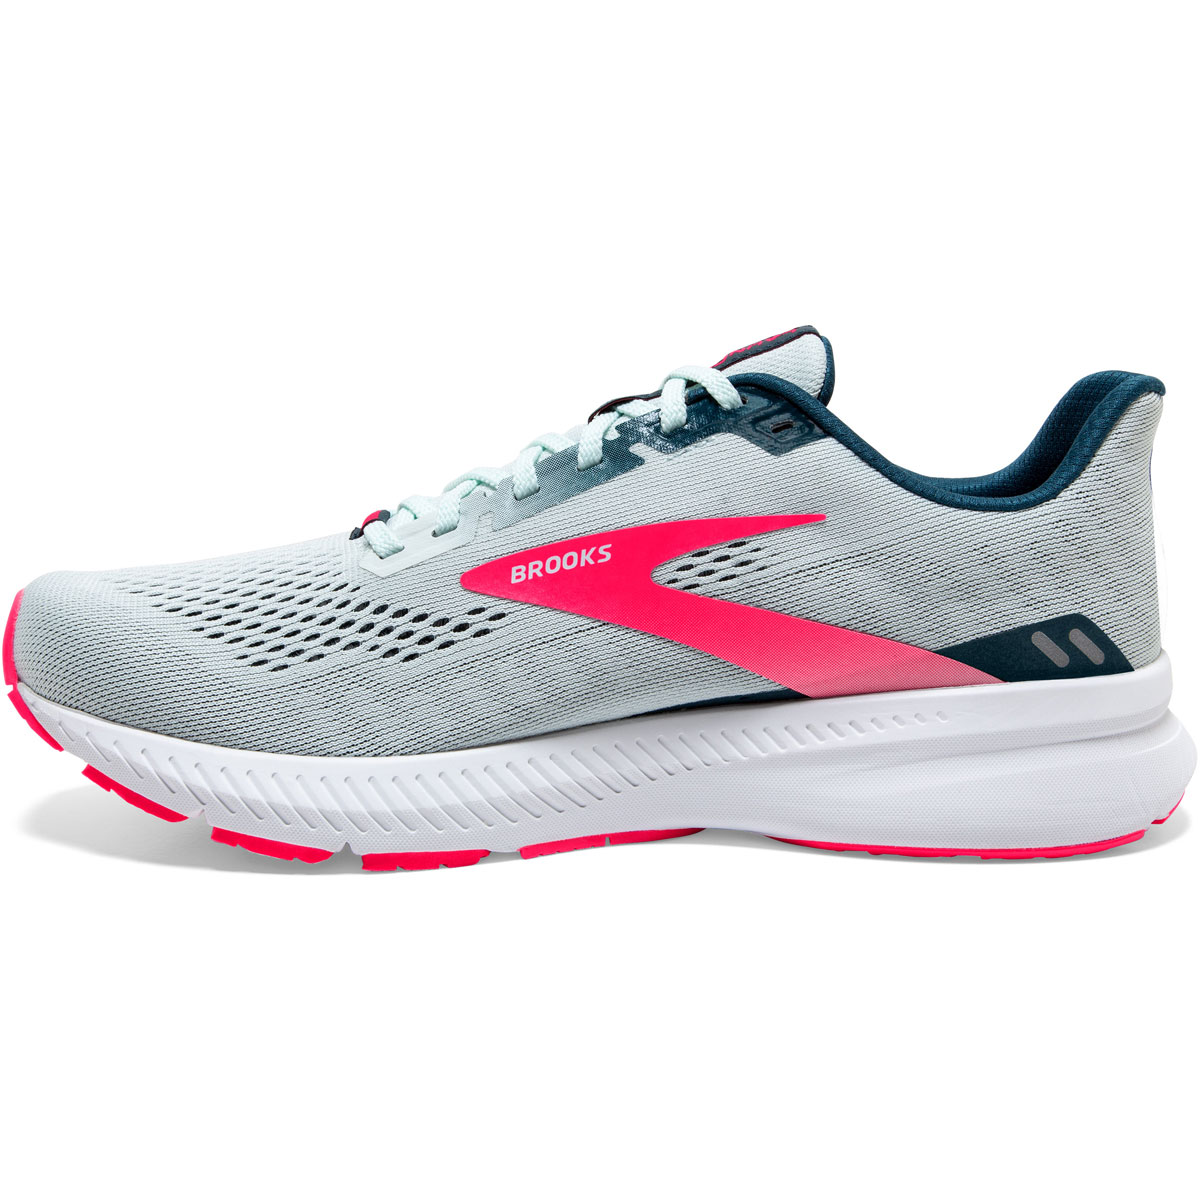 Women's Brooks Launch 8 Running Shoe - Color: Ice Flow/Navy/Pink - Size: 5 - Width: Regular, Ice Flow/Navy/Pink, large, image 2